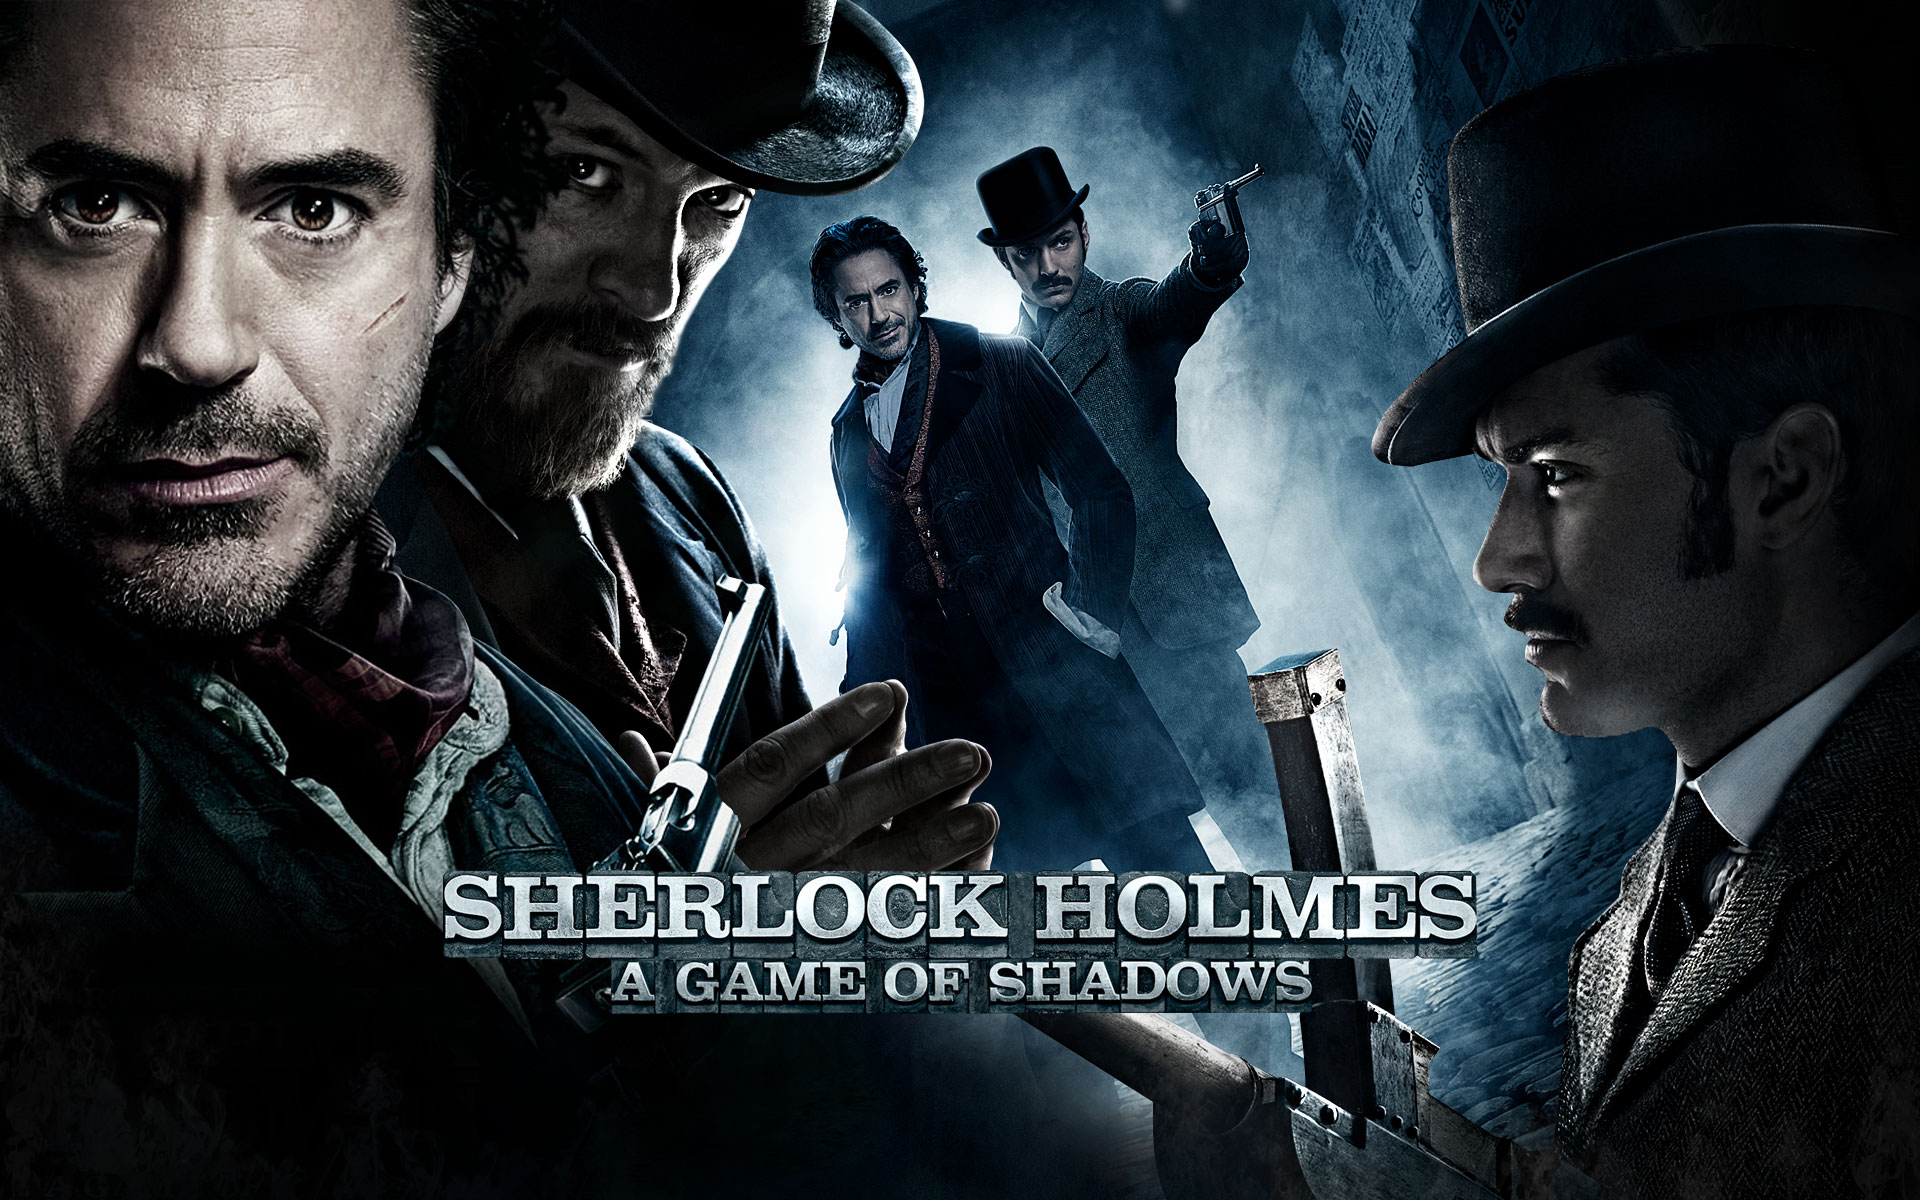 Sherlock Holmes A Game Of Shadows Hd Wallpaper Background Image